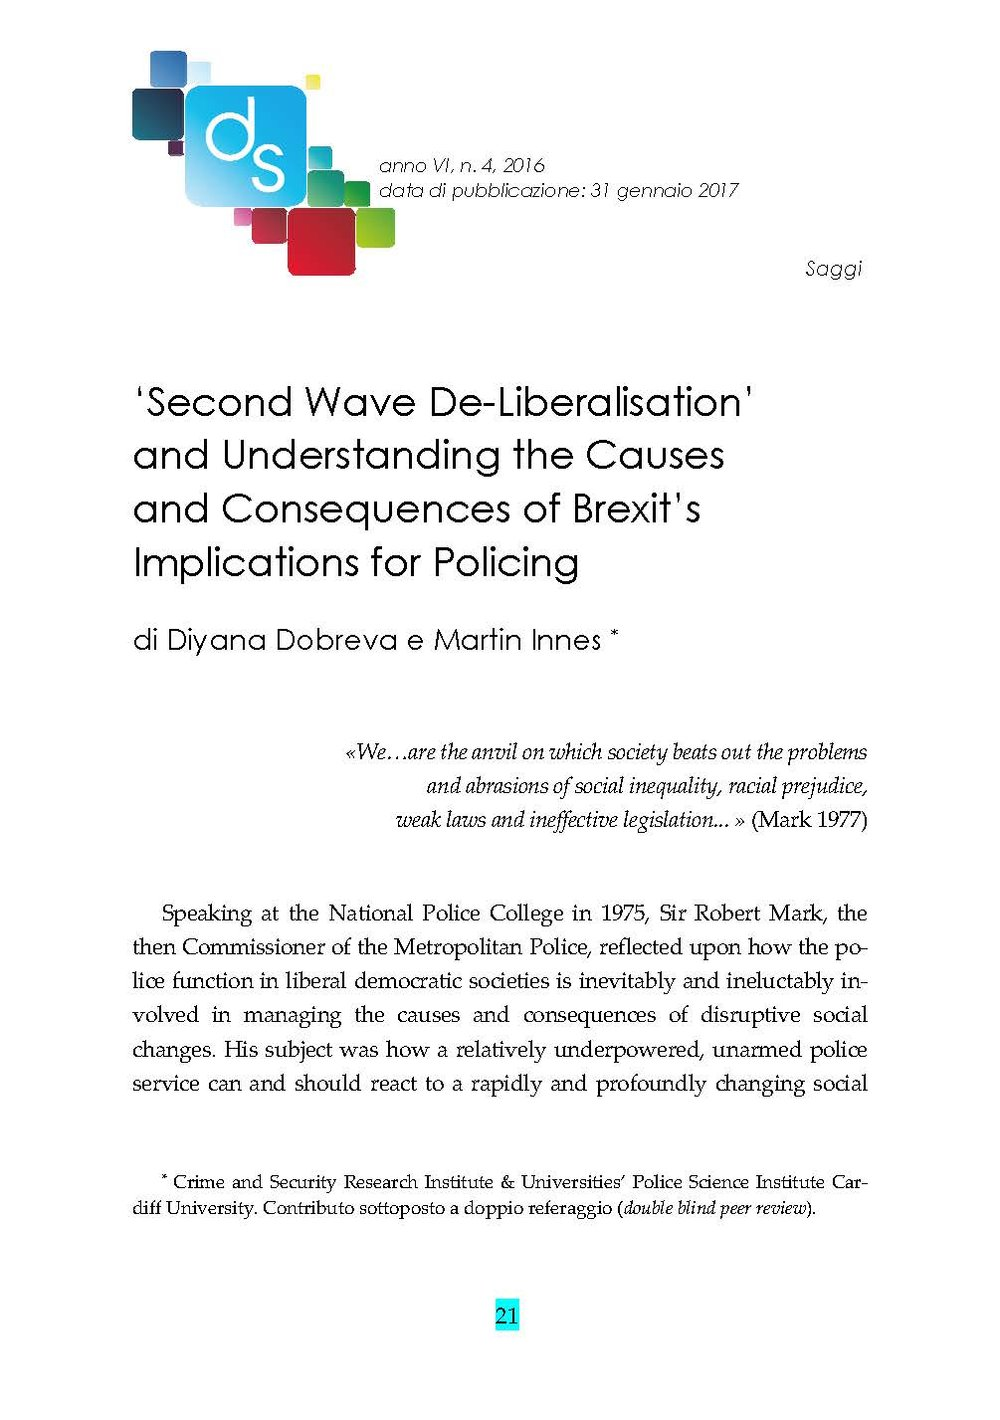 'Second Wave De-Liberalisation'and Understanding the Causesand Consequences of Brexit'sImplications for Policing -